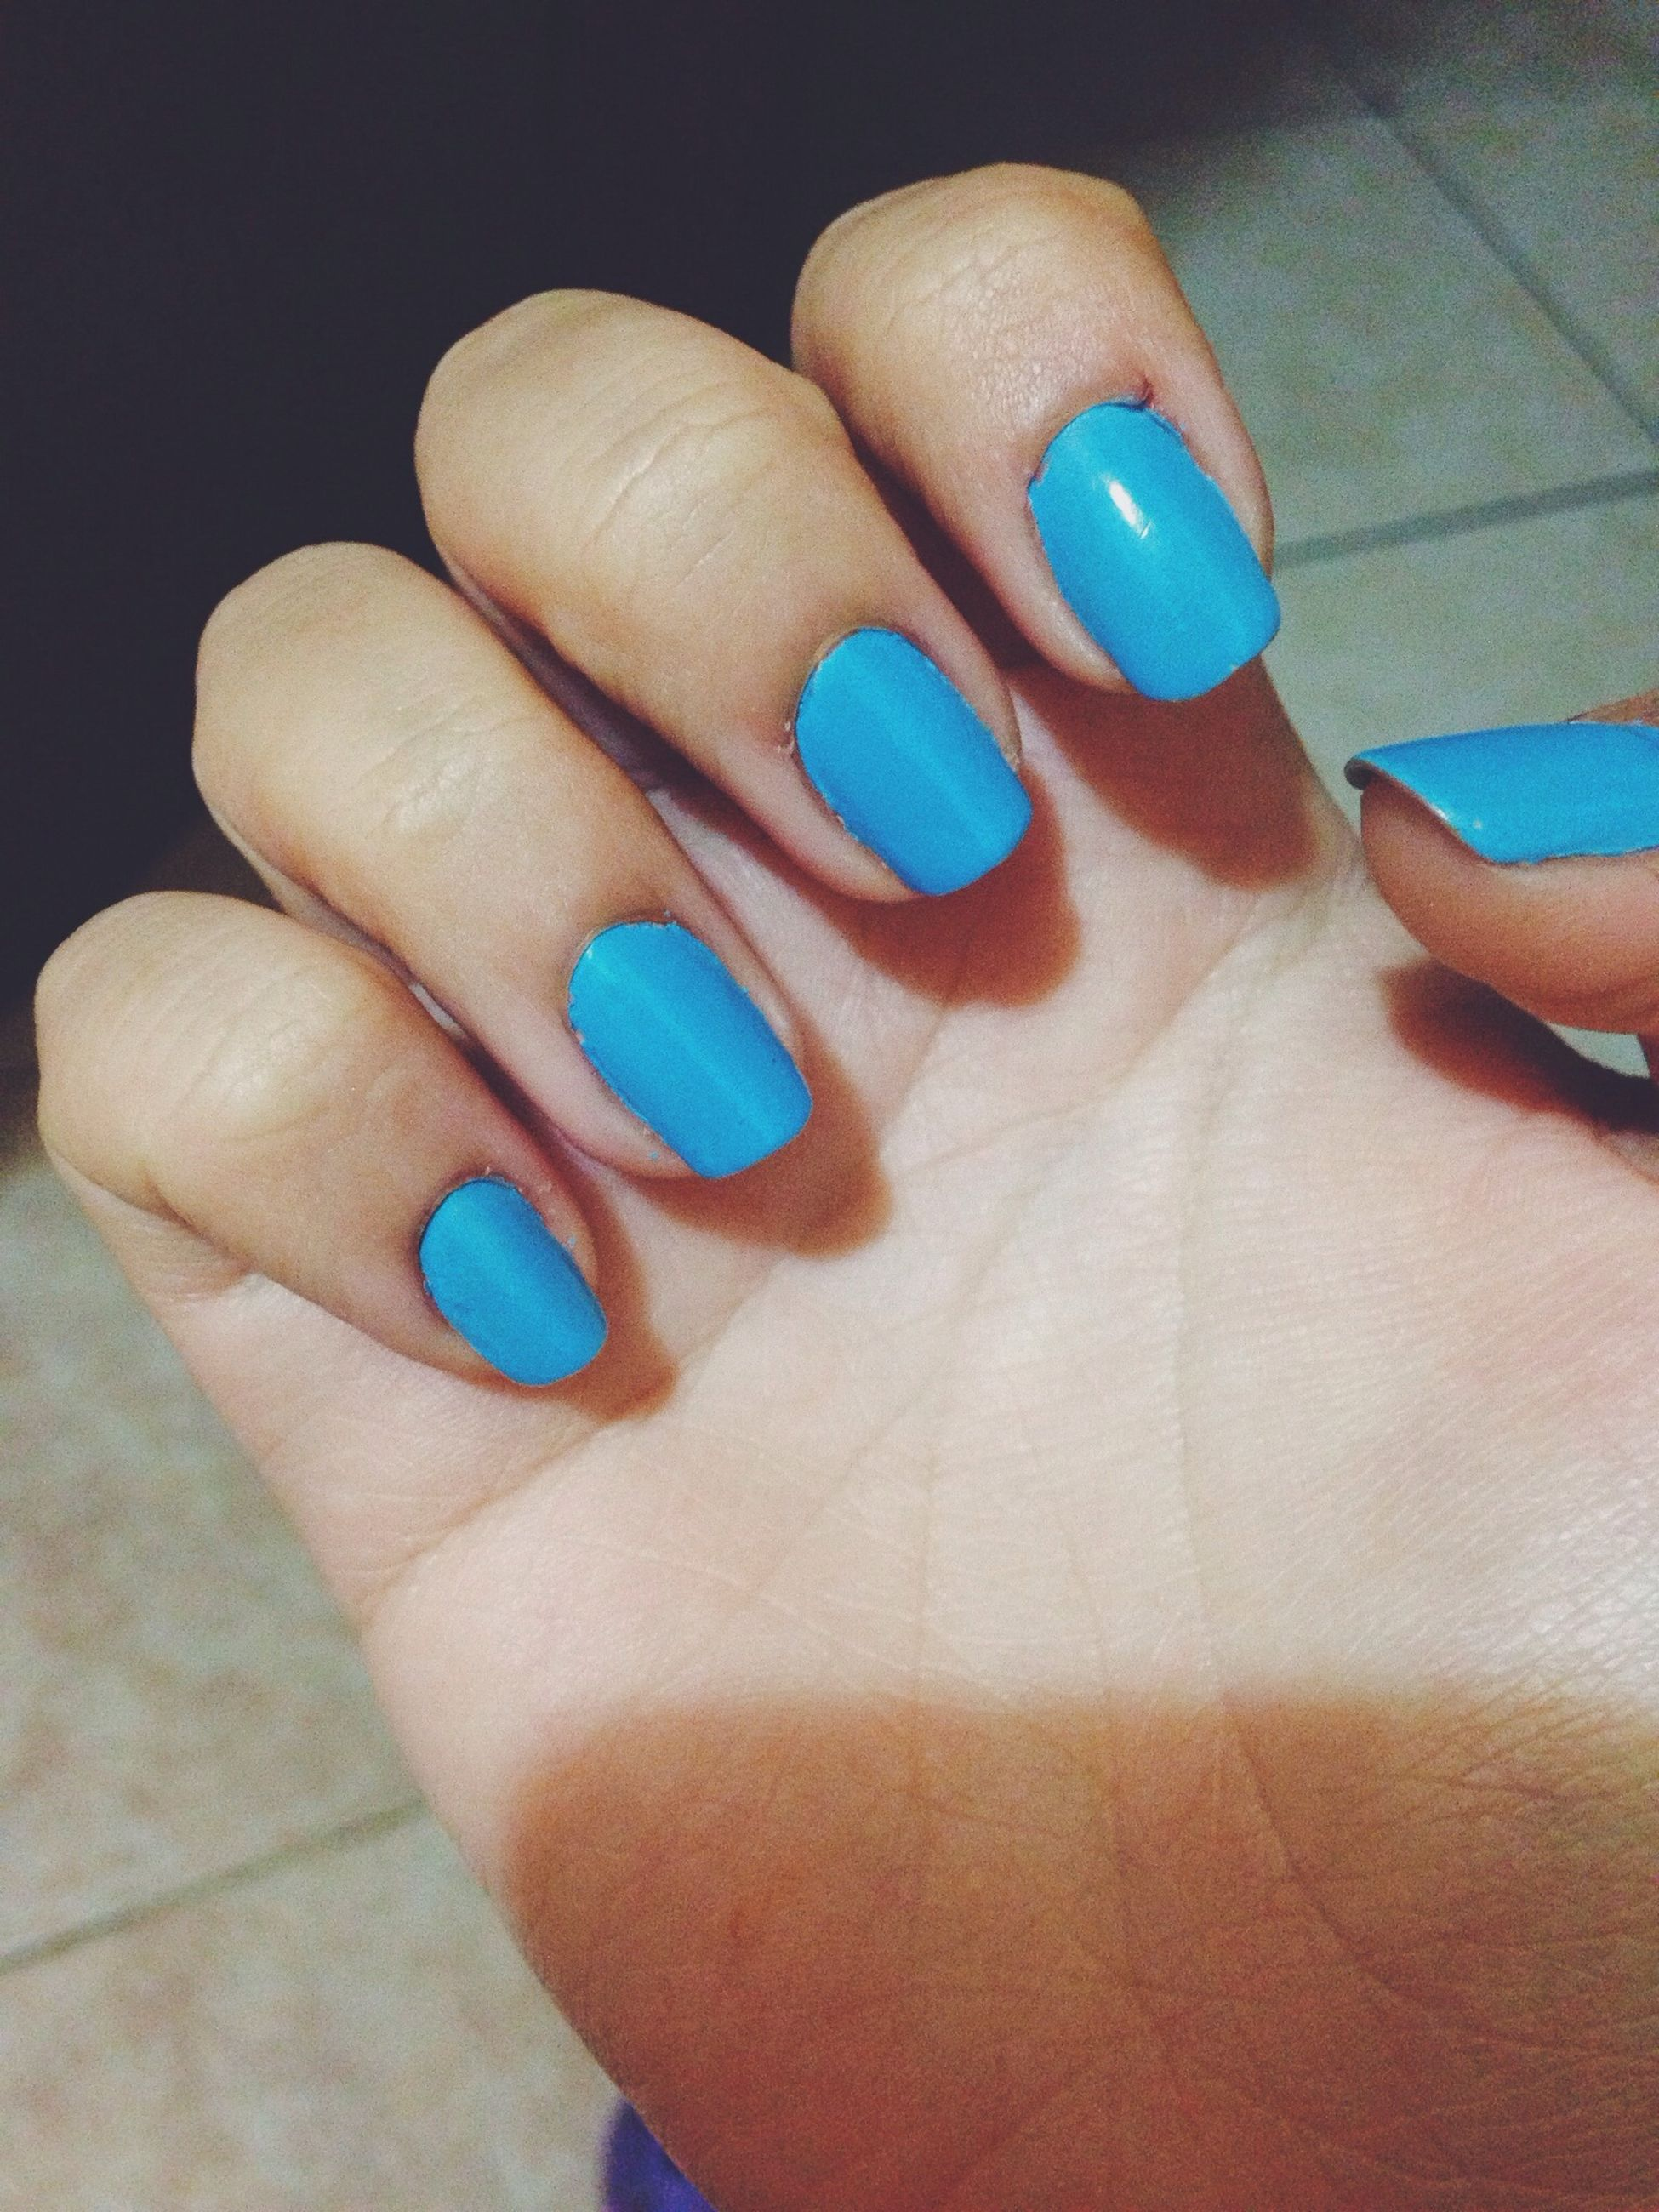 person, indoors, part of, close-up, multi colored, human finger, cropped, holding, blue, high angle view, personal perspective, unrecognizable person, nail polish, still life, fashion, variation, leisure activity